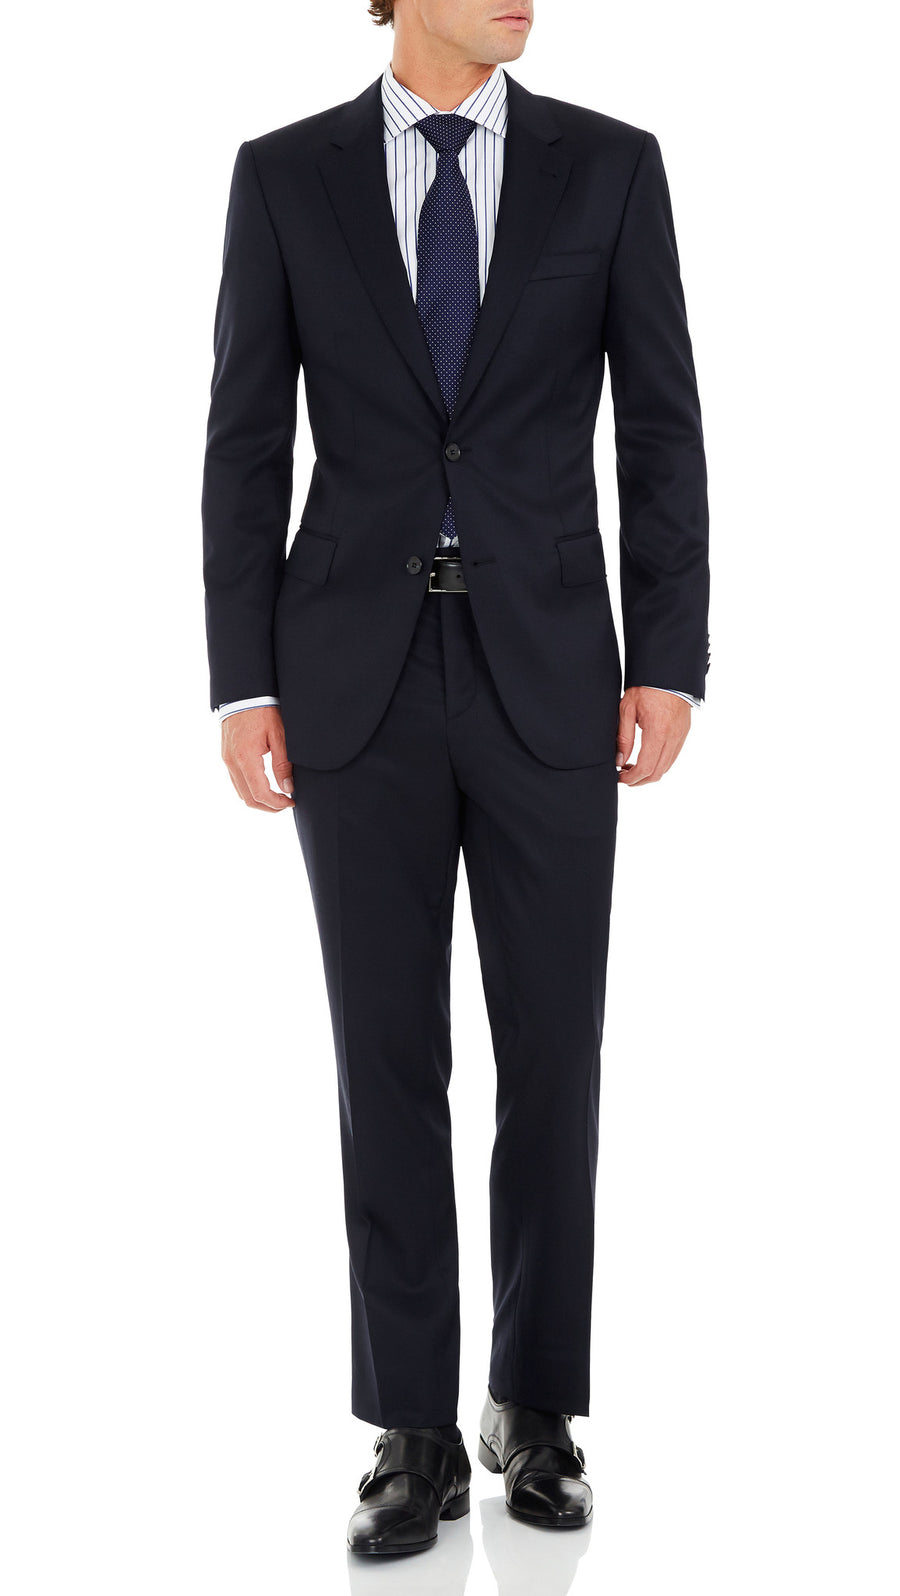 Nicholby & Hardvard Slim Fit Suit in Navy - Ron Bennett Menswear  - 3